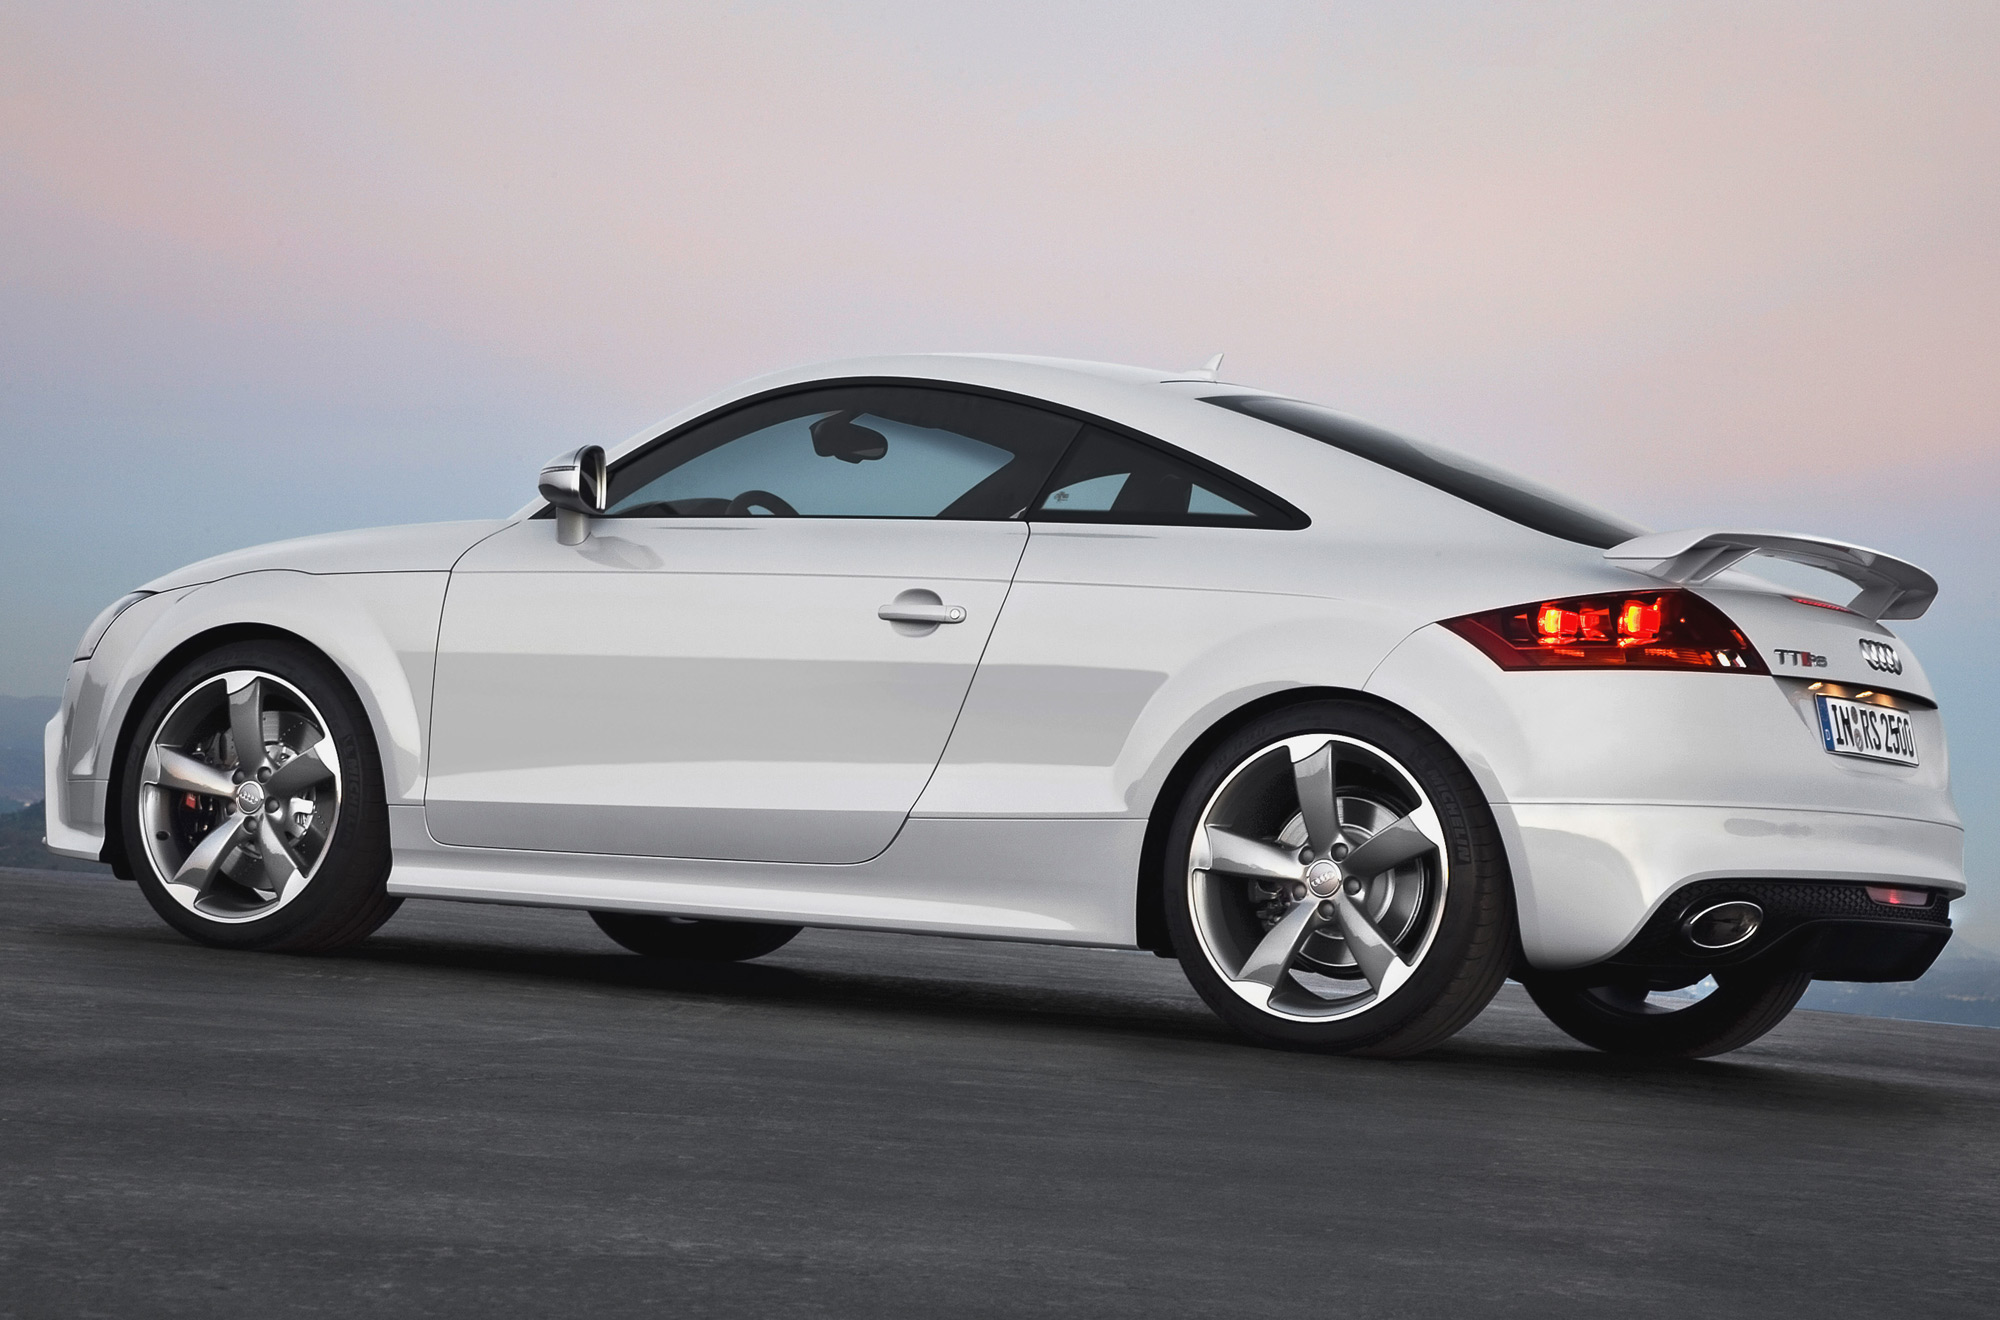 geneva 2009 audi tt rs due in australia early 2010. Black Bedroom Furniture Sets. Home Design Ideas